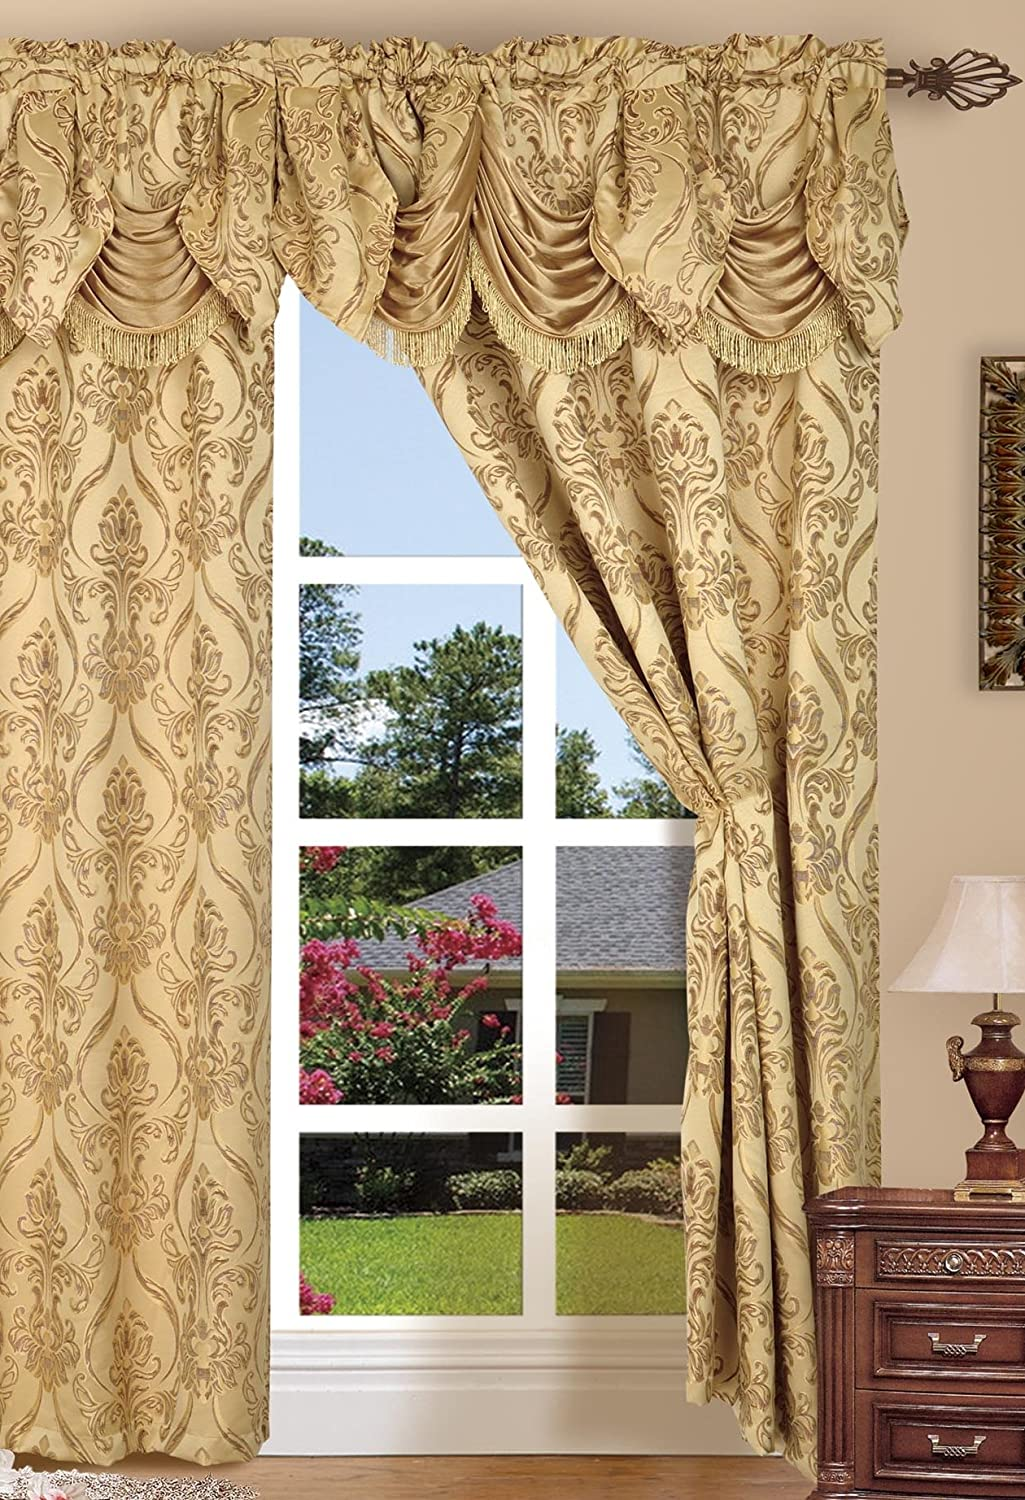 Elegant Comfort Penelopie Jacquard Look Curtain Panels, 54 by 84-Inch, Gold